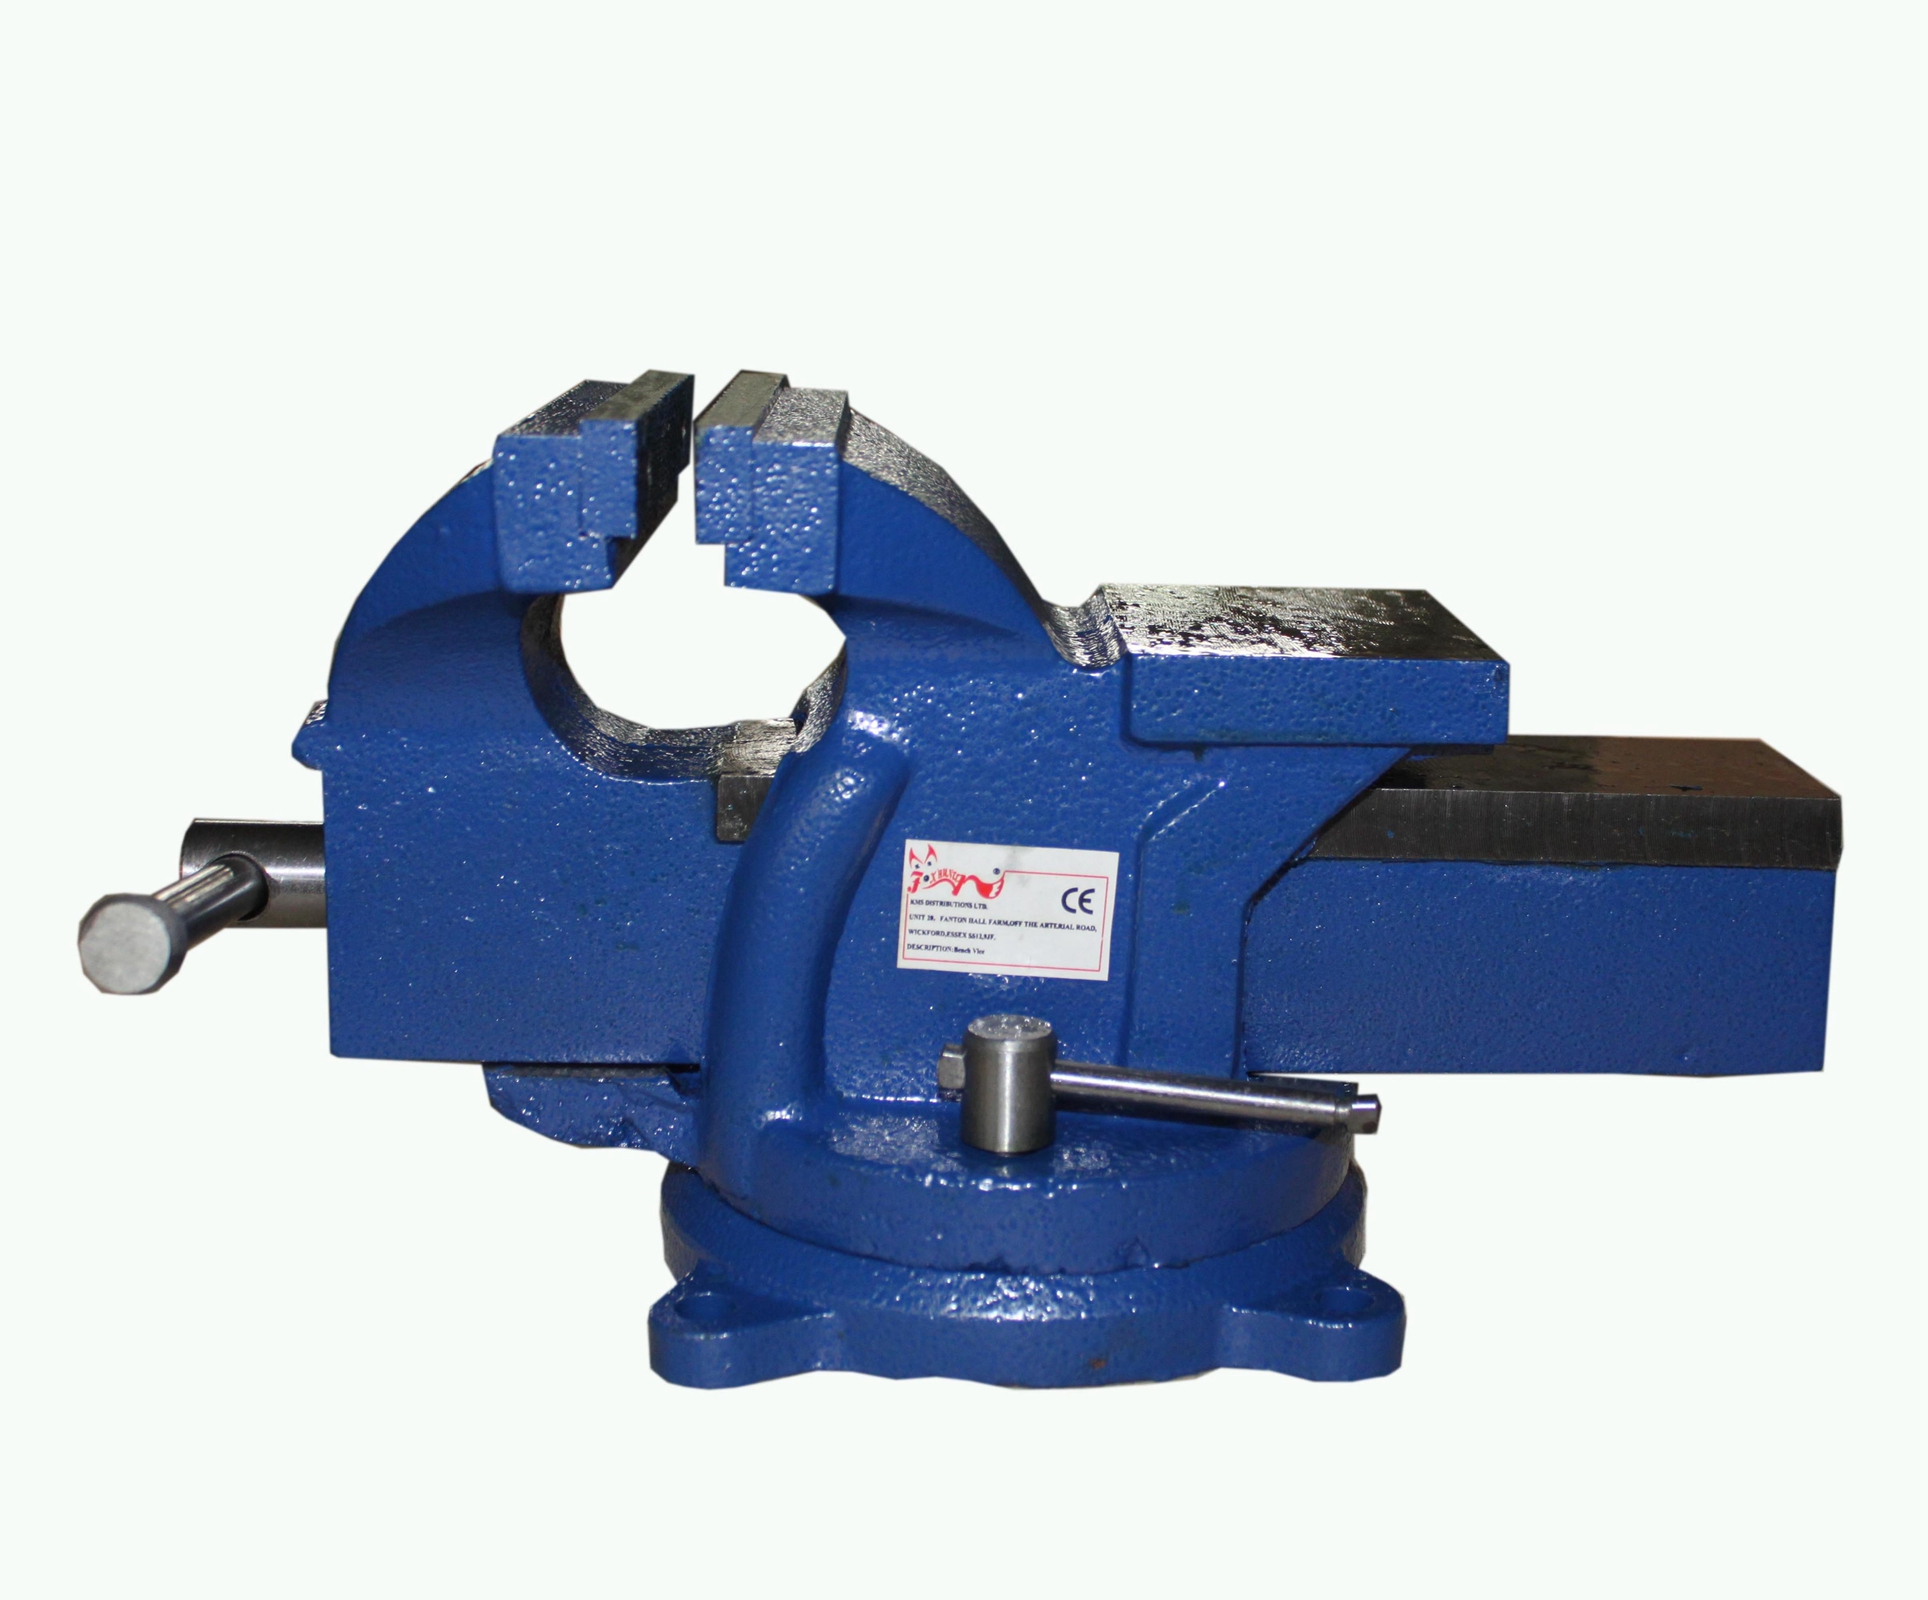 Foxhunter Bench Vice Vise 4 Inch 100mm Jaw Clamp Swivel Base For Workbench Table Ebay